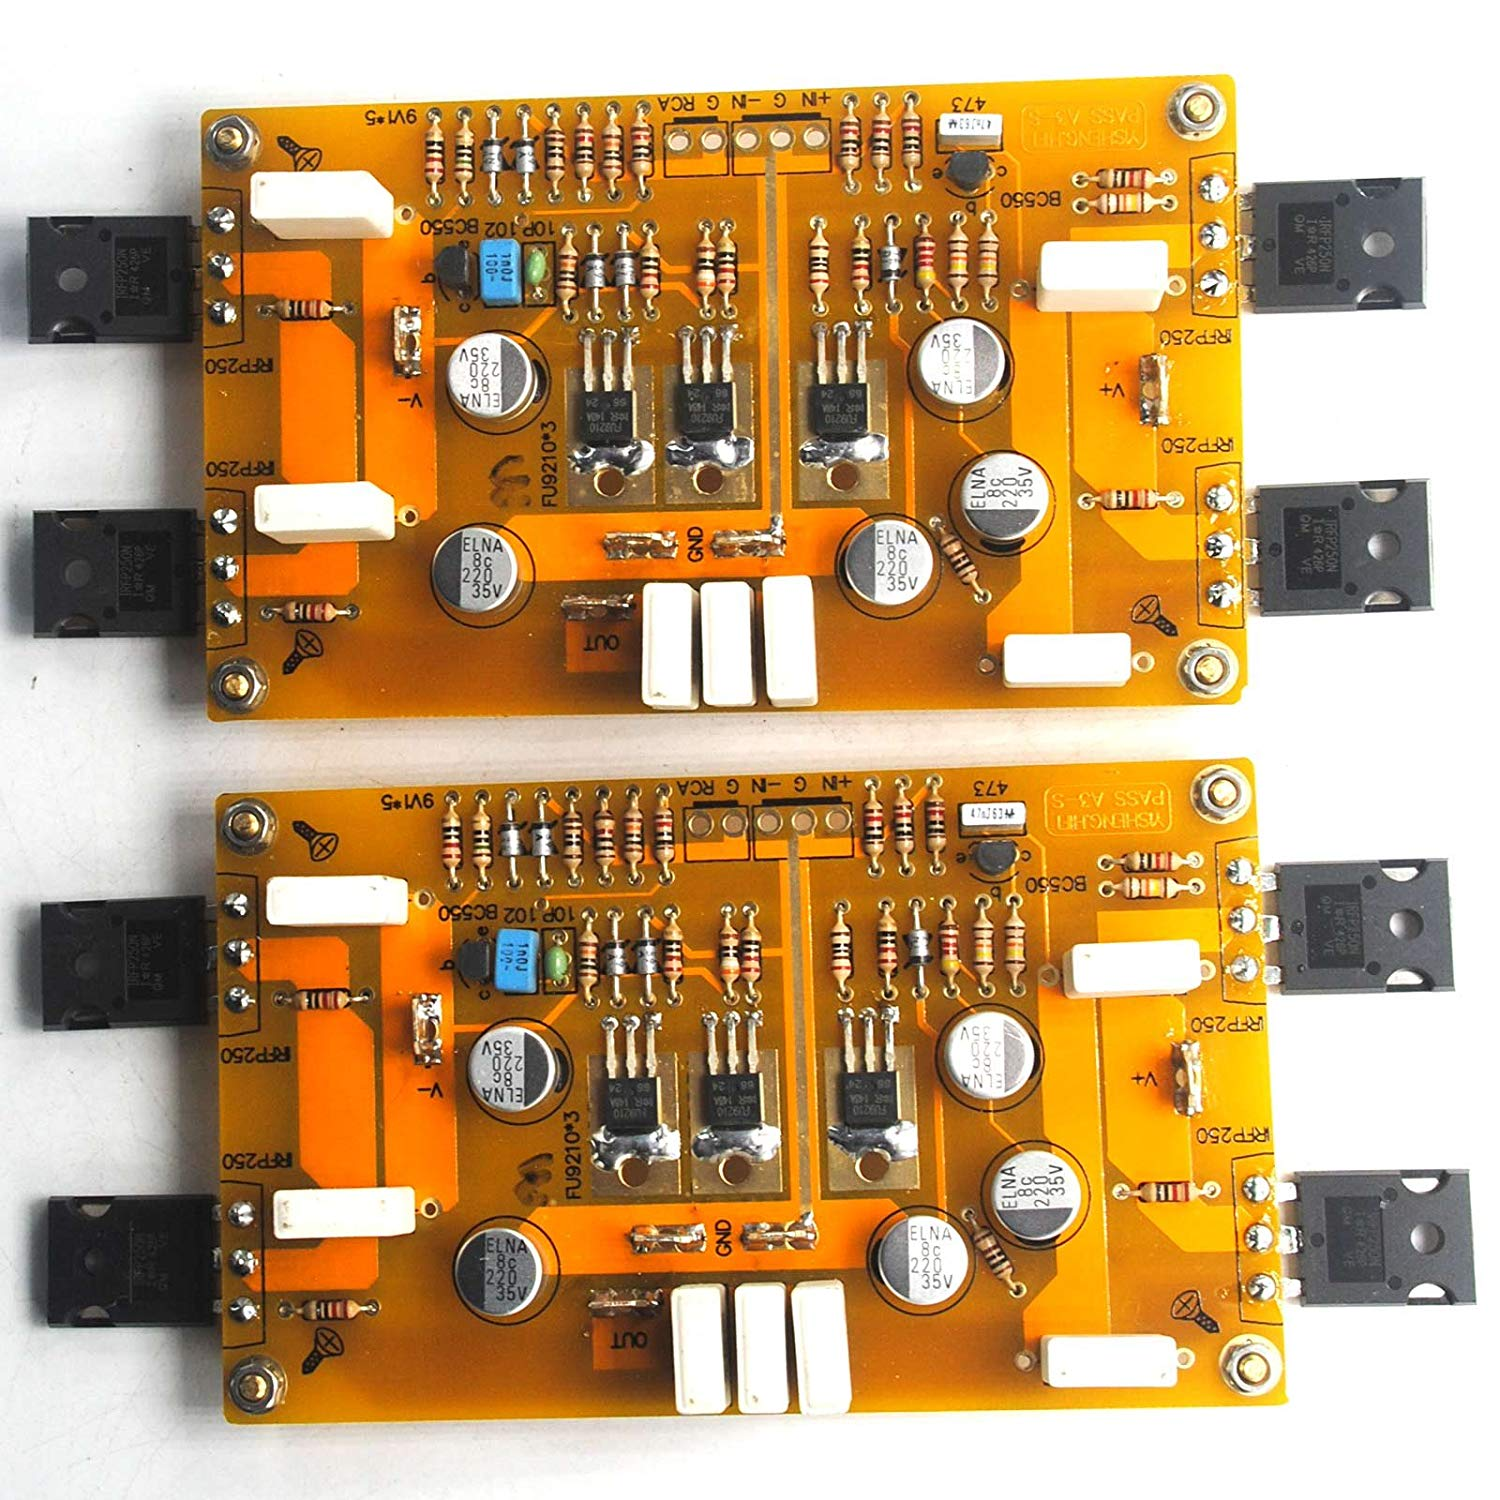 2PASS A3 HiFi Amplifier Board IRF9610 IRF244 30W+30W DC25V Class A Single-Ended